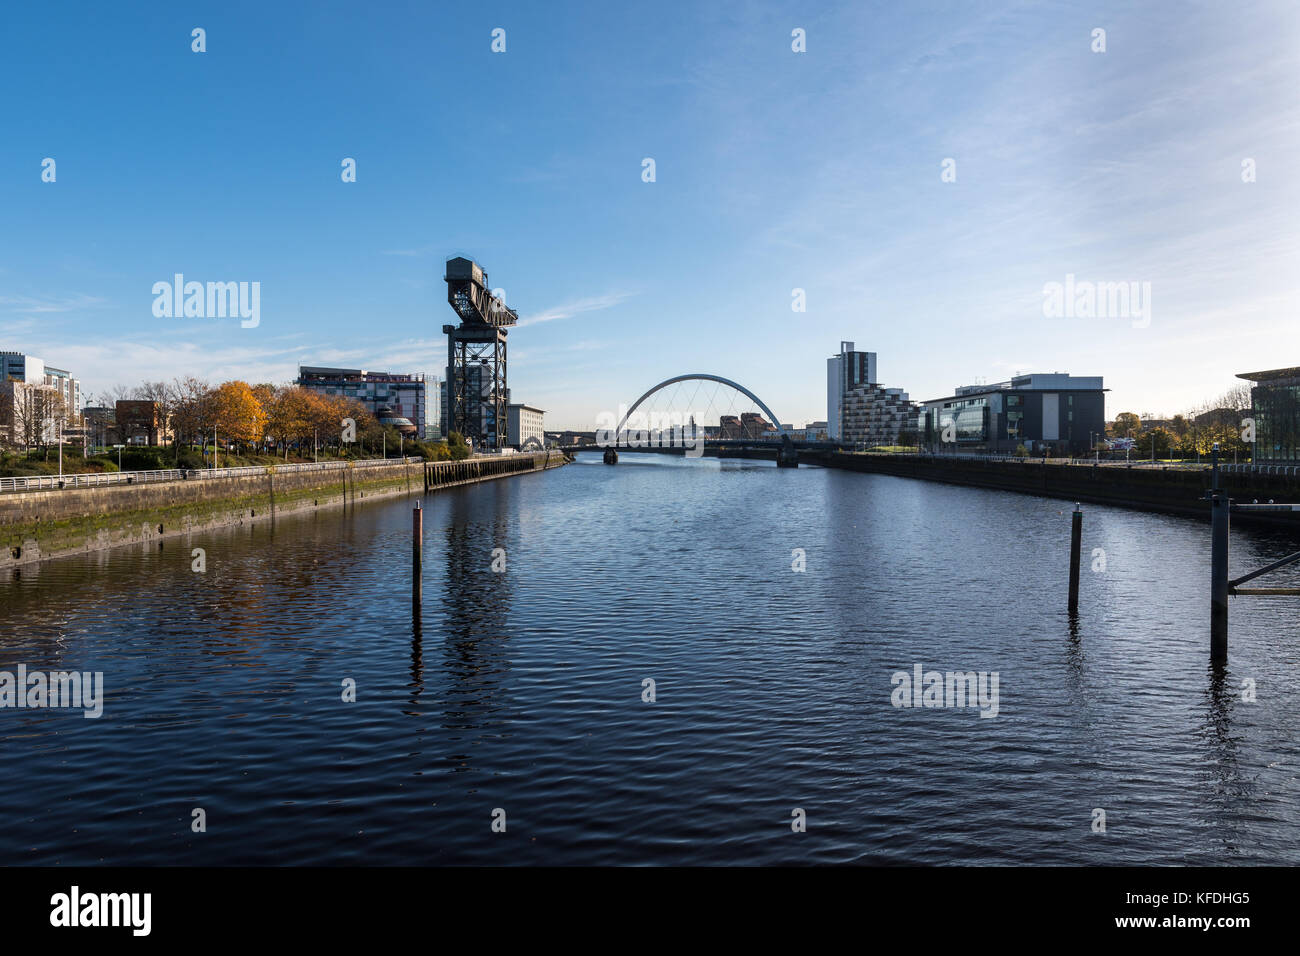 A View From The Glasgow Science Centre At The Clyde Auditorium (Armadillo) Crowne Plaza, Squinty Bridge and Finnieston - Stock Image